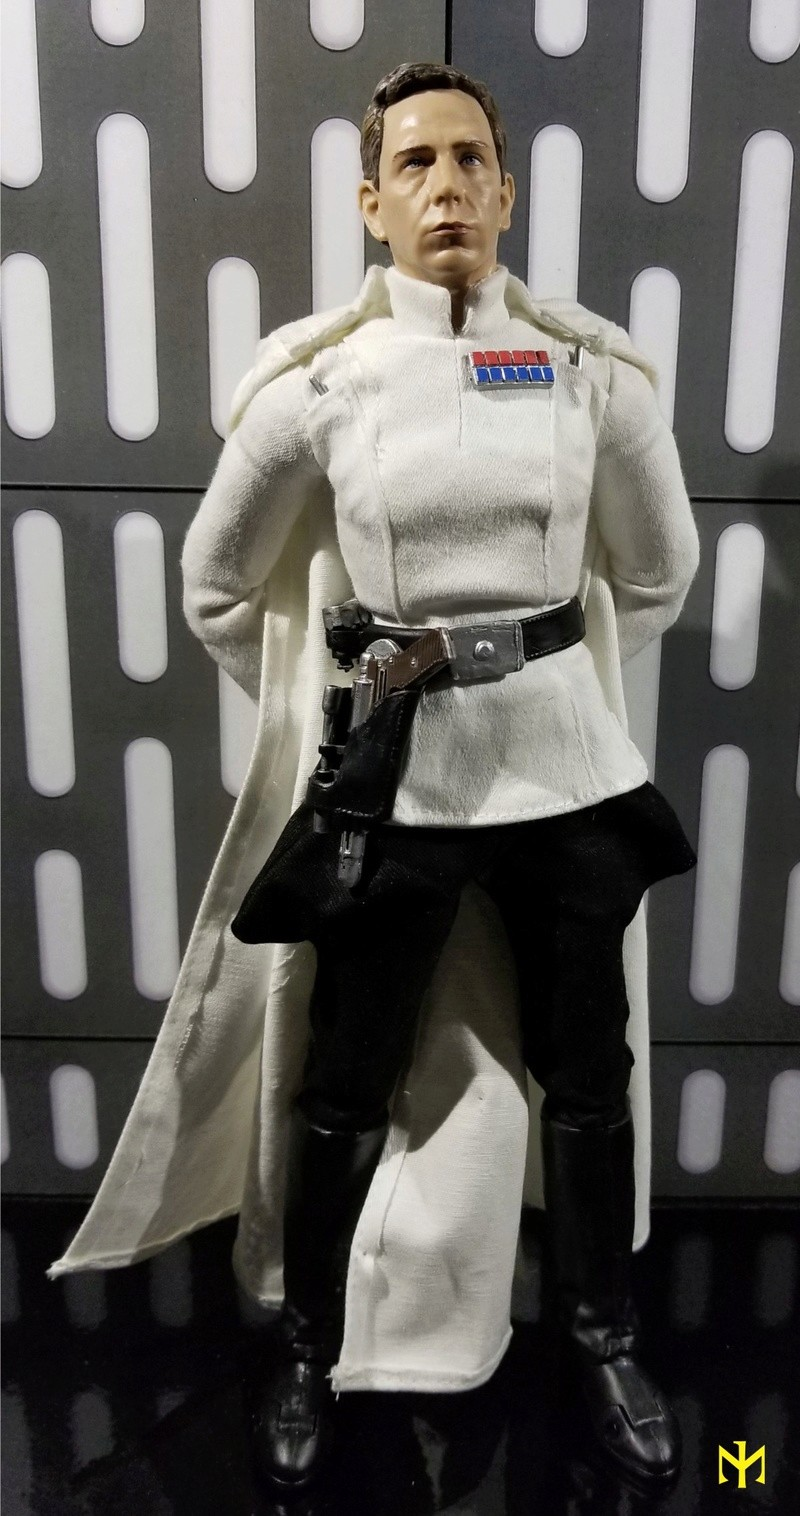 Product Review Disney Star Wars Elite Series Director Orson Krennic Premium Action Figure Krenni24